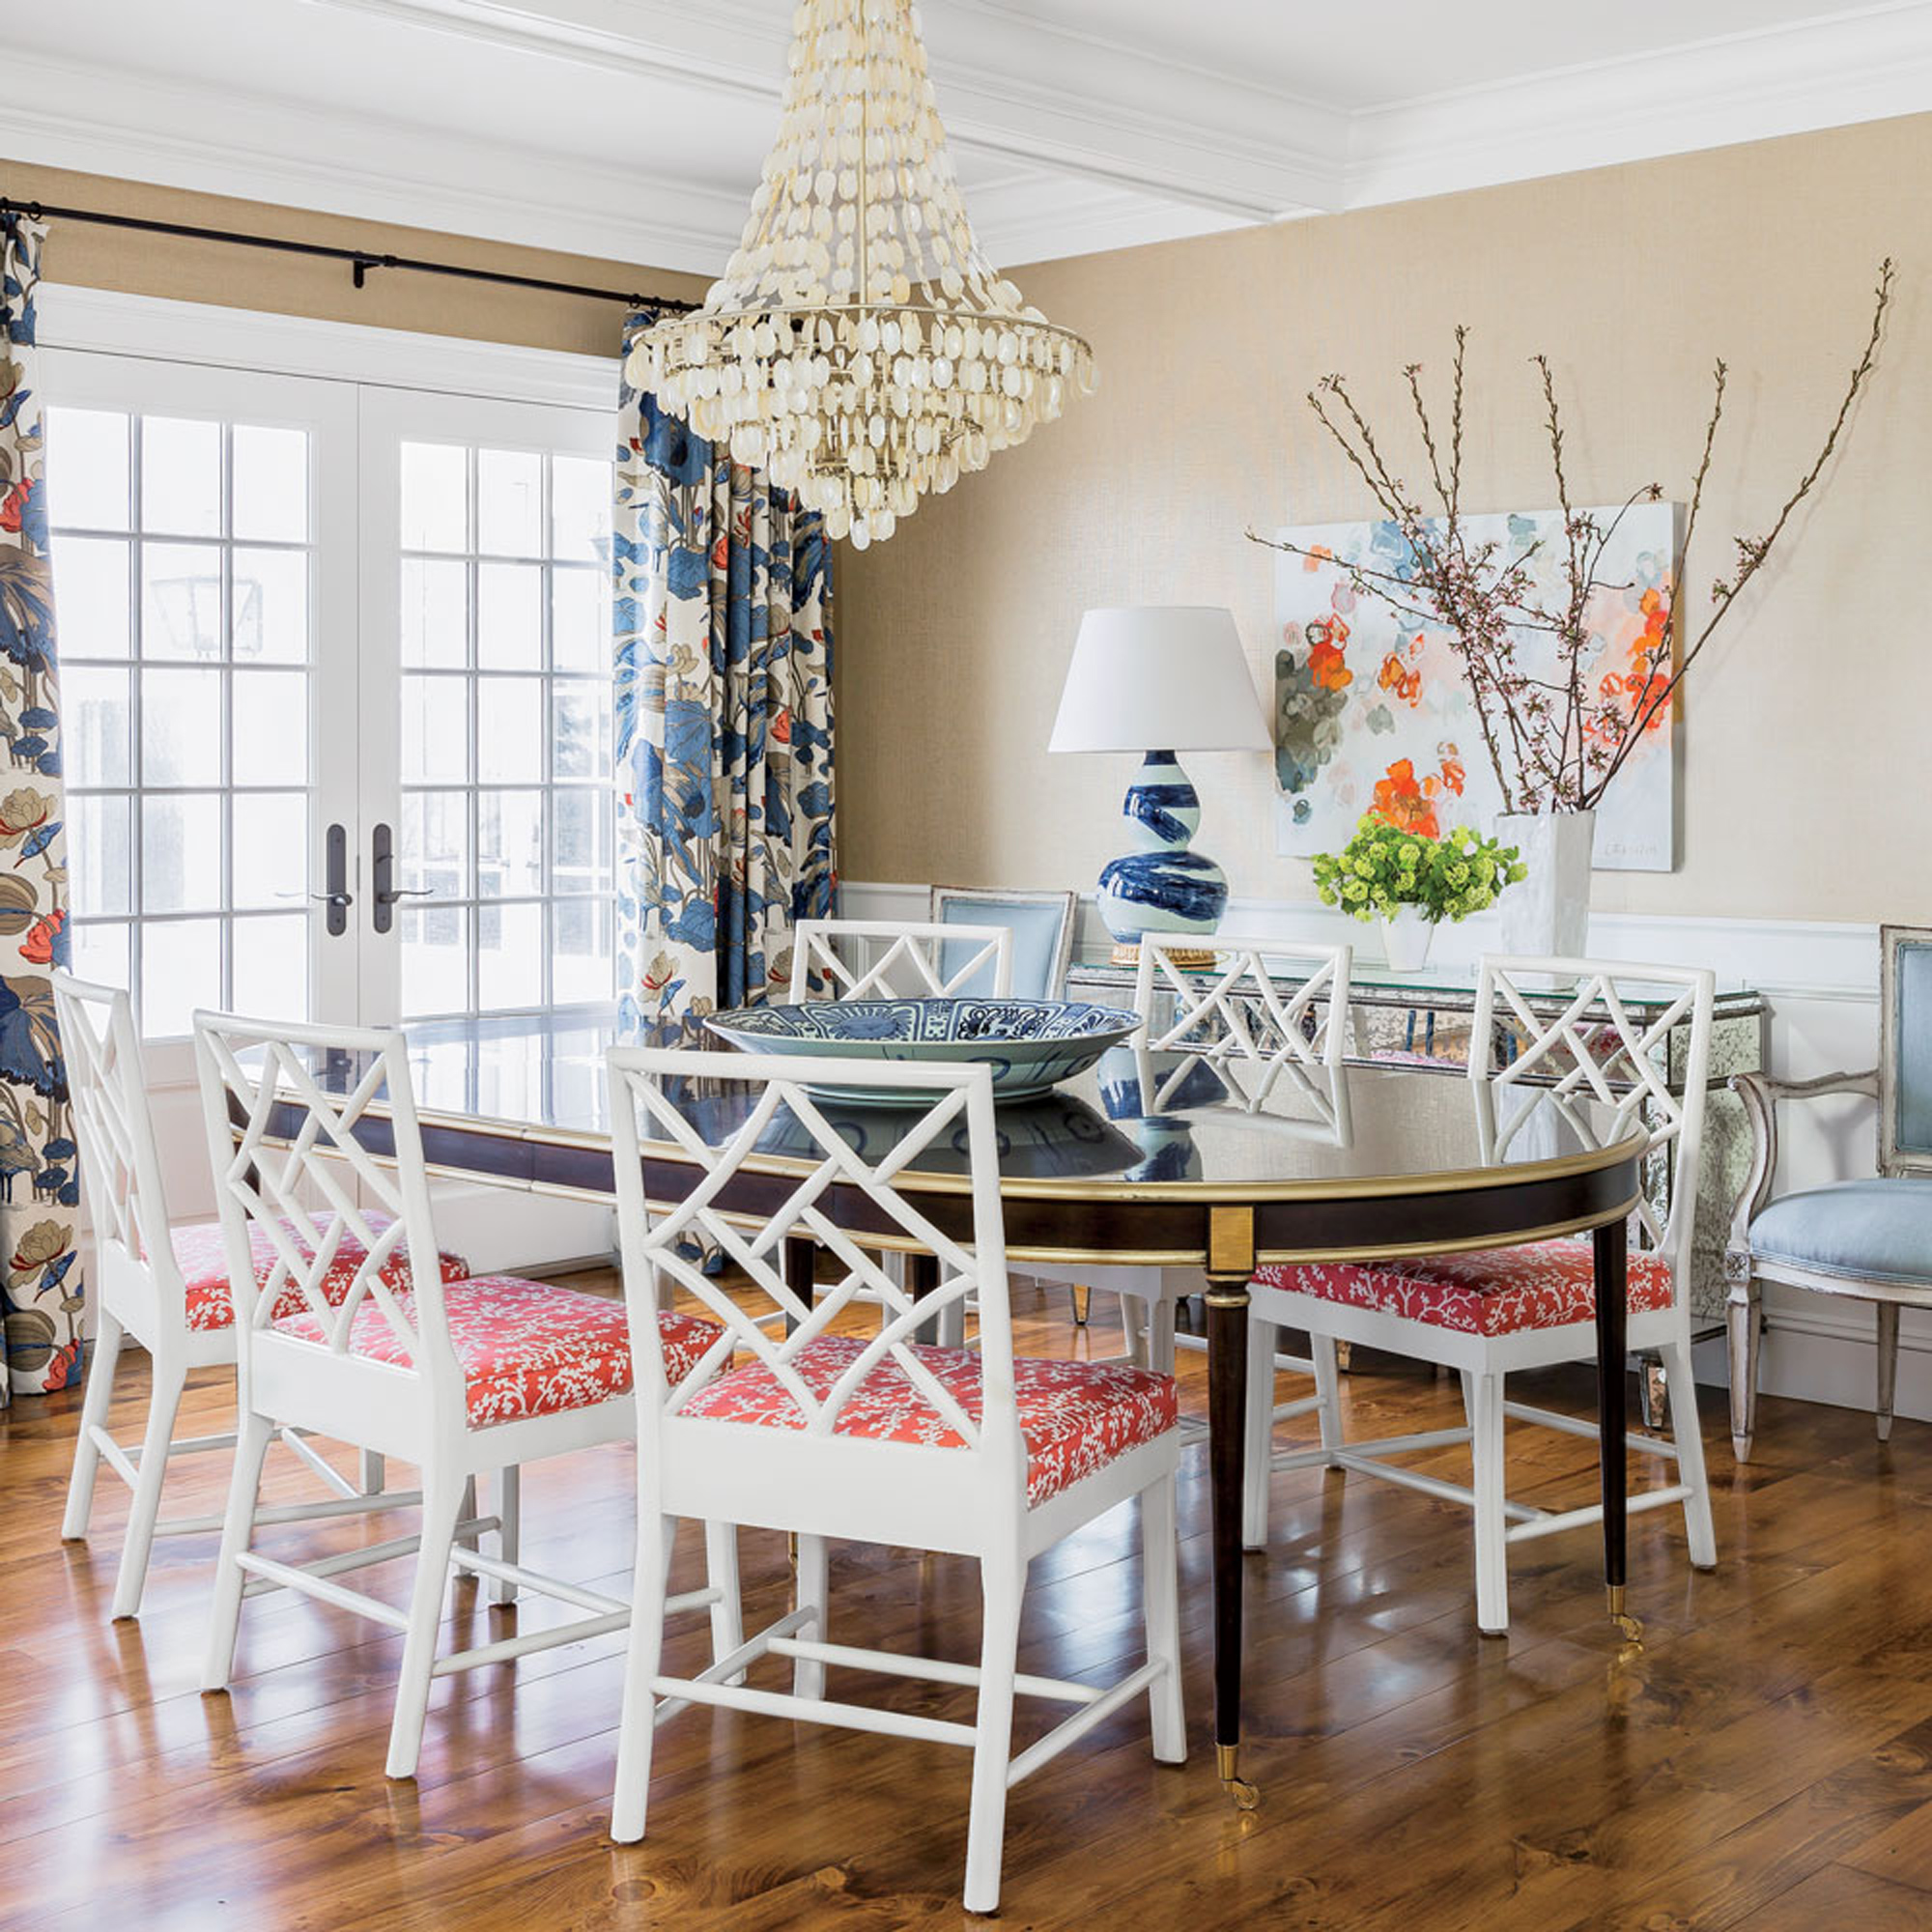 Bold patterns in striking blues and vivid corals pack a colorful punch in this dining room, which seamlessly blends super traditional pieces, like the stately table and mirrored console, with groovier pieces, like the Chippendale chairs and an artfully marbled lamp.                             Idea Spotlight                             Bring the beach inside. In this Cohasset, Massachusetts, dining room, a mother-of-pearl shell chandelier dresses down the room's more formal elements and connects the space to the Atlantic Ocean just steps from the house.